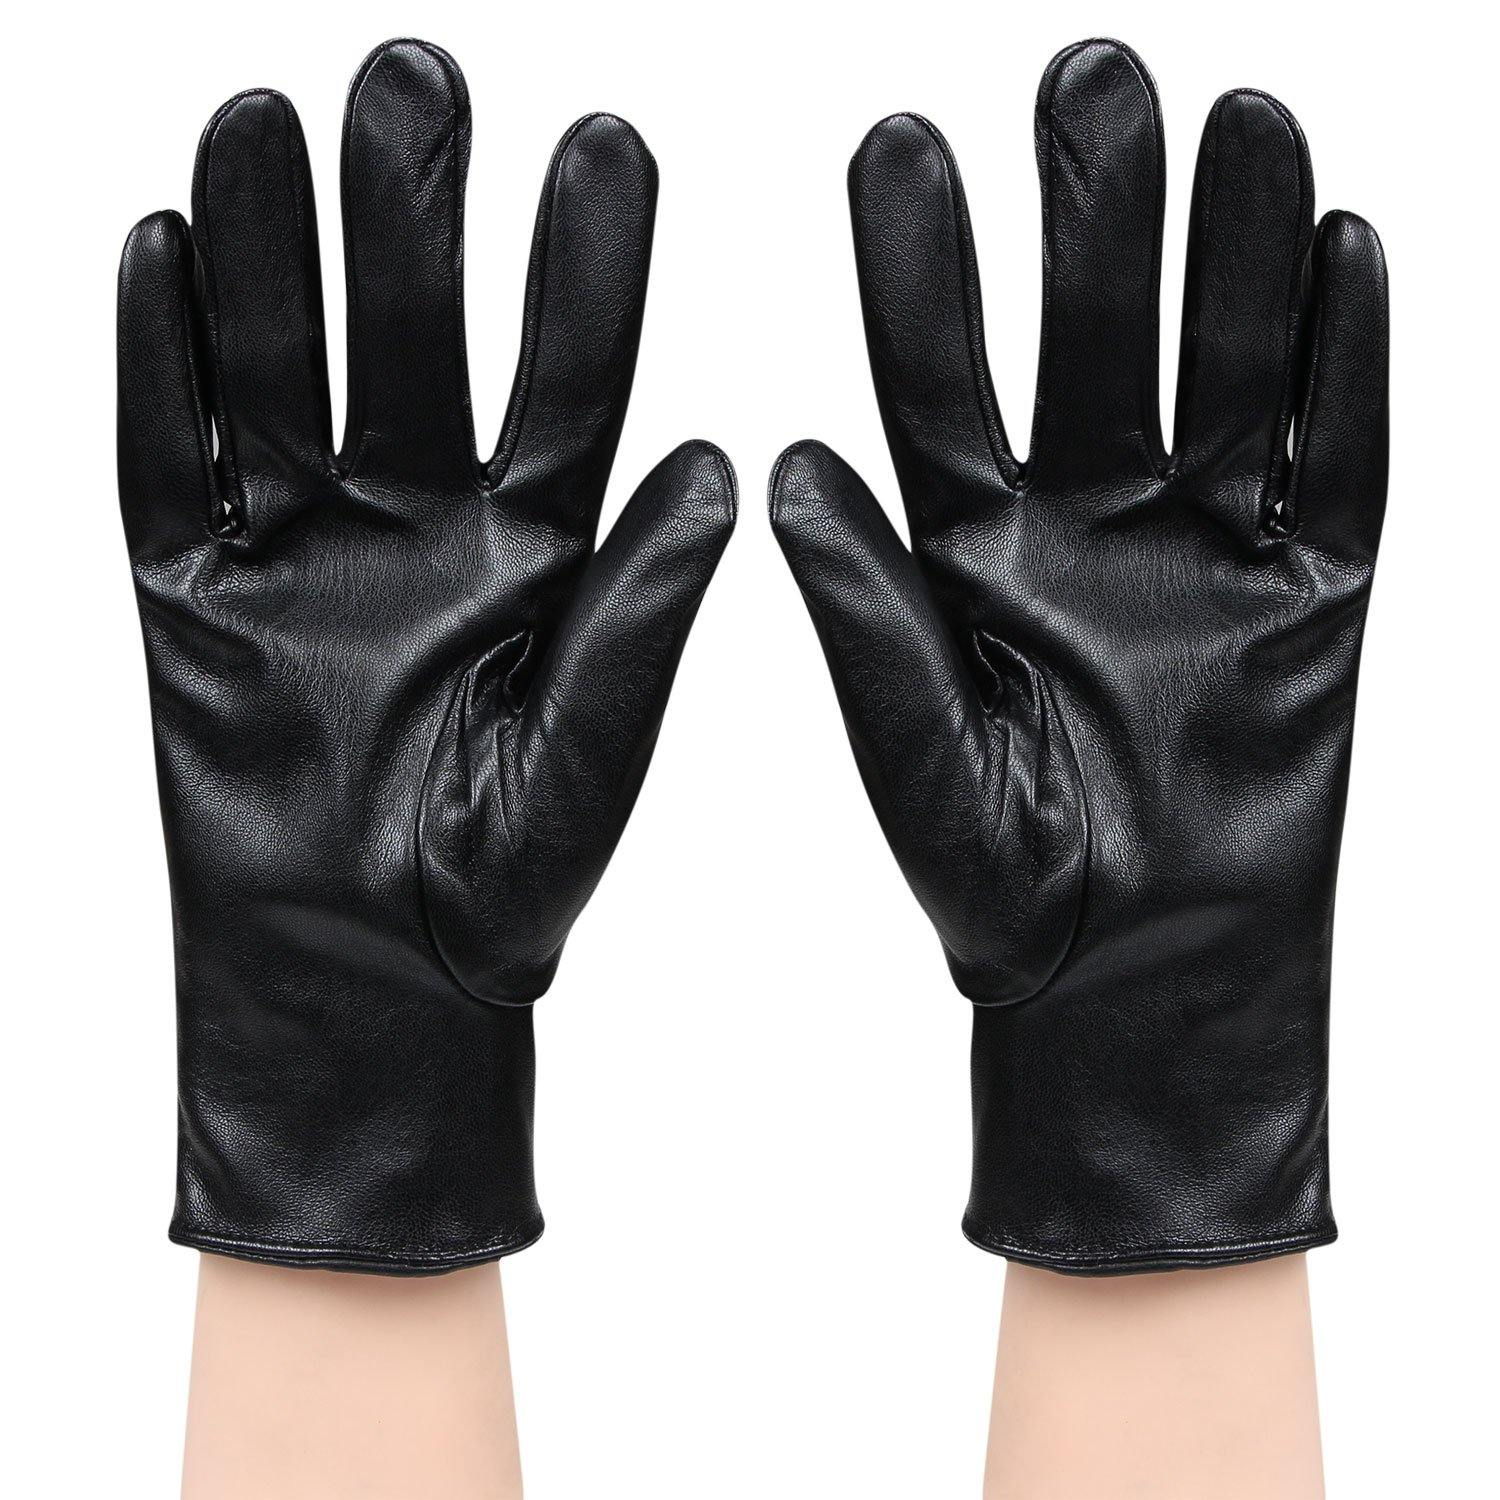 Solid Winter Men's Gloves - Black